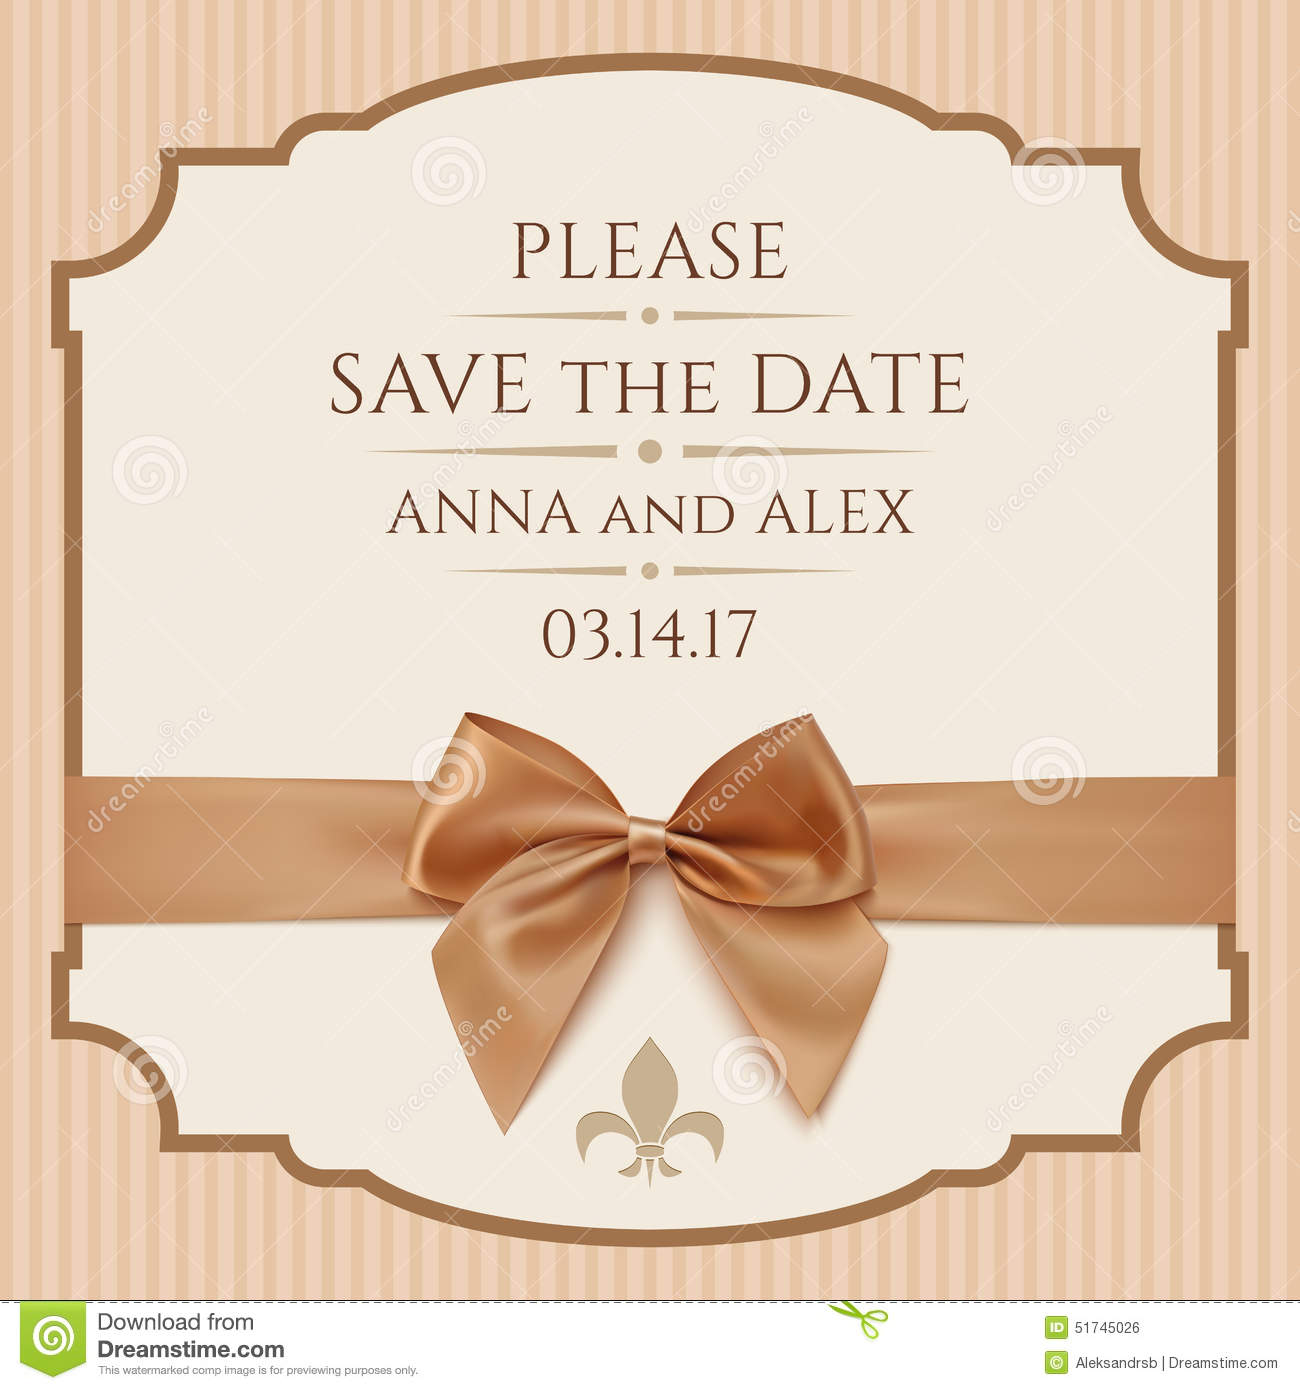 free wedding save the date templates - Boat.jeremyeaton.co